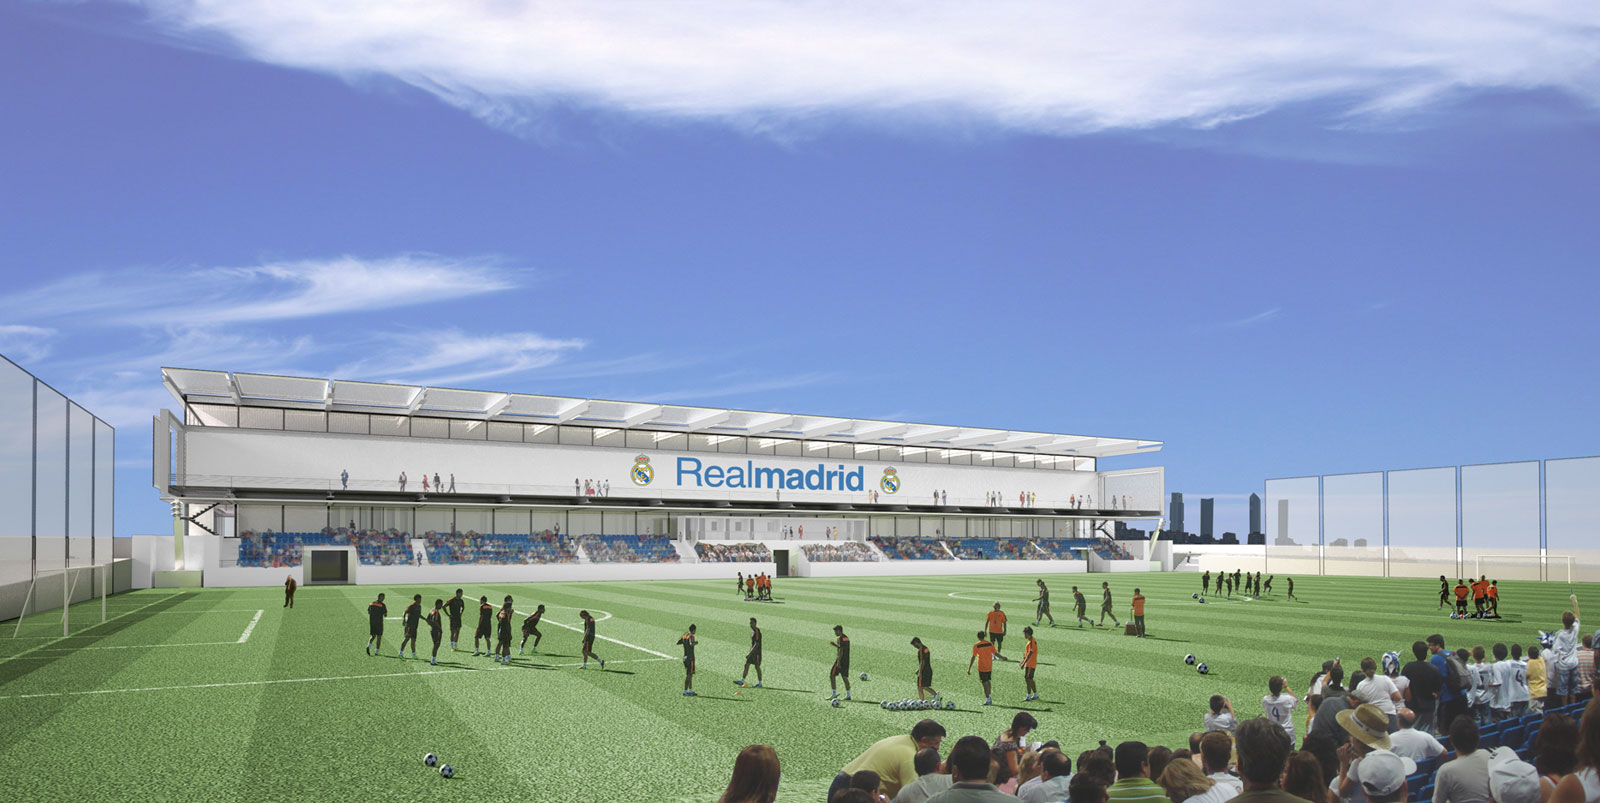 Proyectos pabellon deportivo real madrid allende for Real madrid oficinas telefono